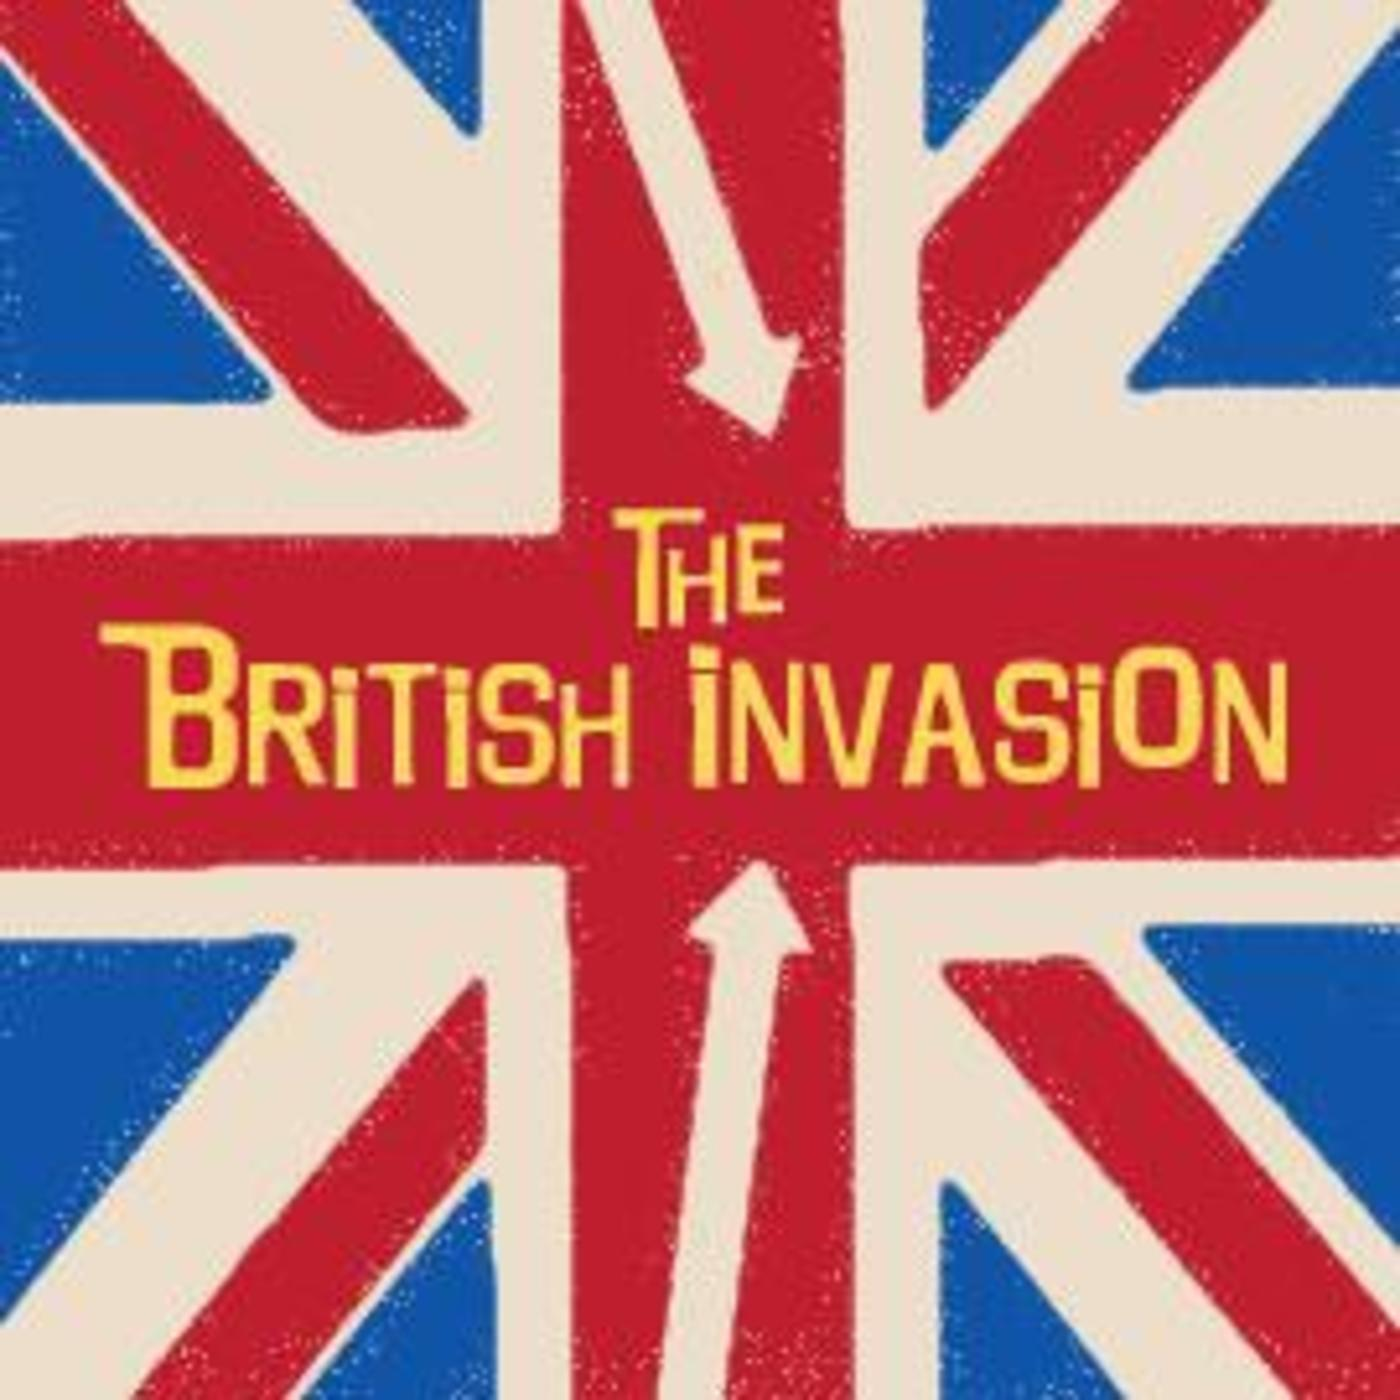 British Invasion - Billy J. Kramer & The Dakotas, Herman's Hermits, The Rolling Stones, The Searchers, The Honeycombs, Adam Faith, The Swinging Blue Jeans, The Ivy League, The Fourmost